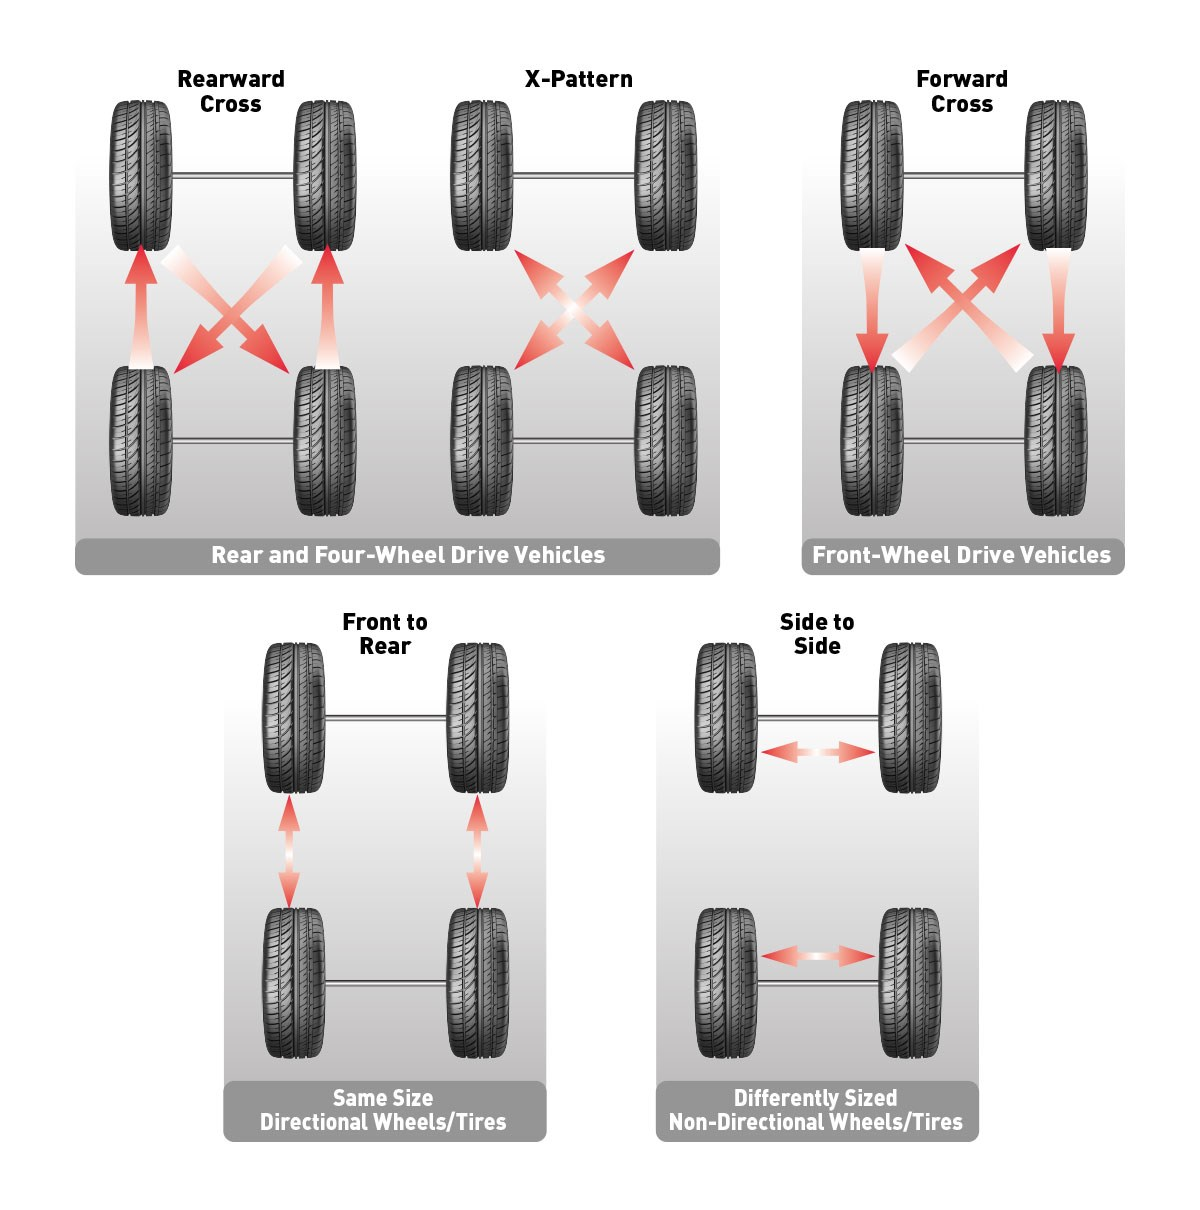 Adverse safety consequences of overloading on handling and stopping and on tires